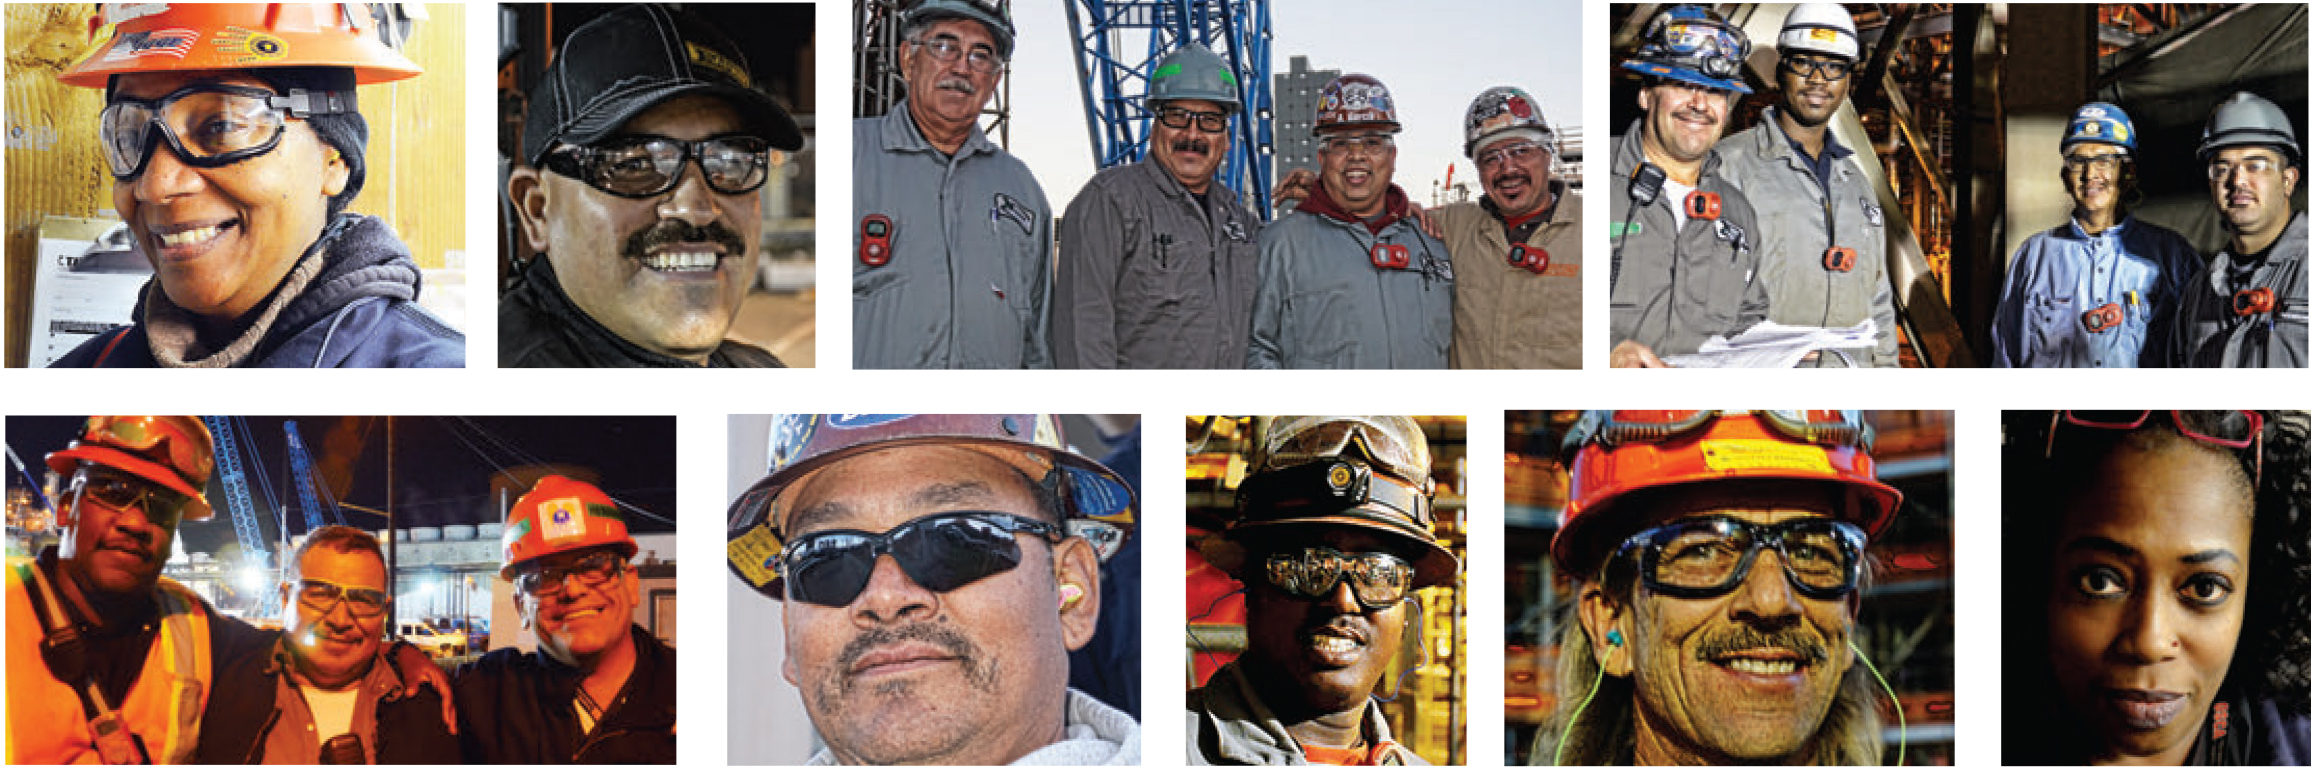 Chevron event to provide info on jobs involving Richmond Refinery modernization project